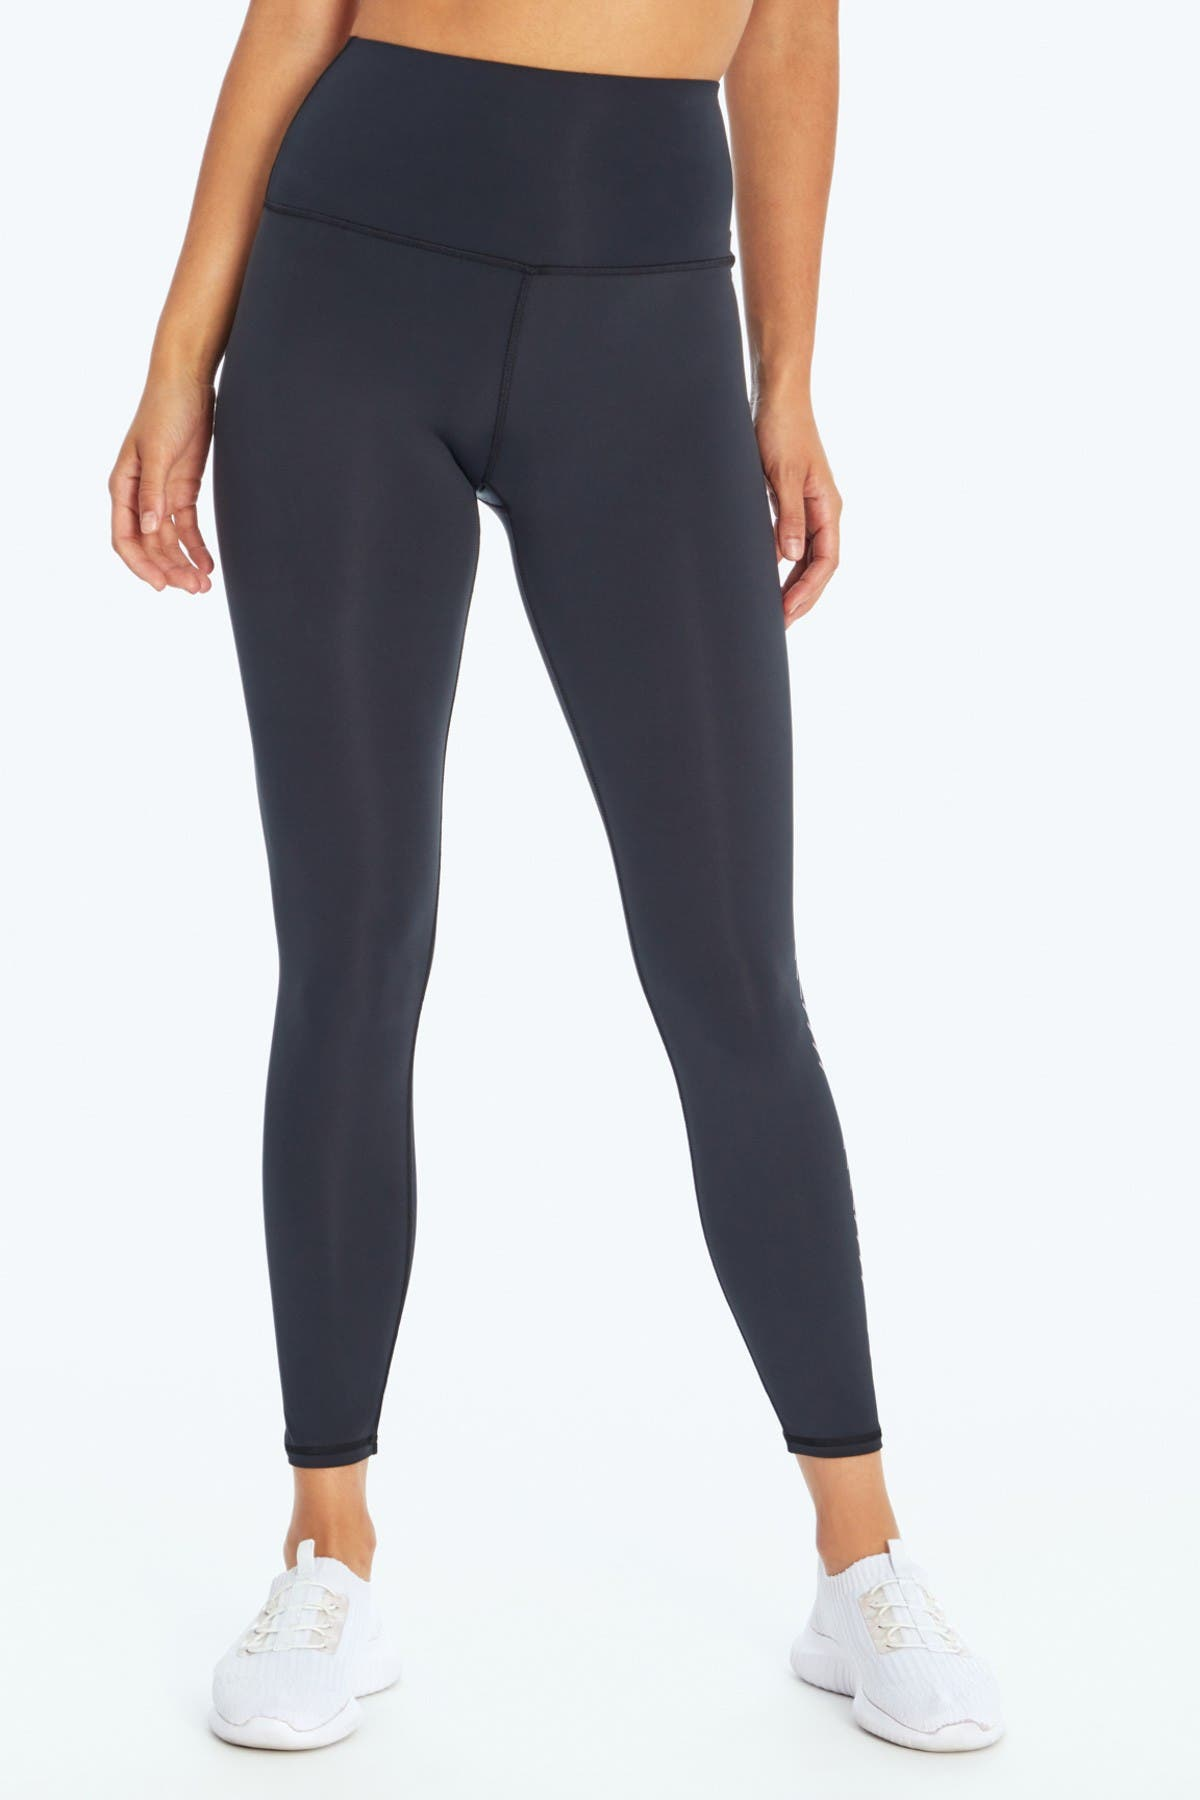 Image of CYCLE HOUSE Pride 25 Inch Legging